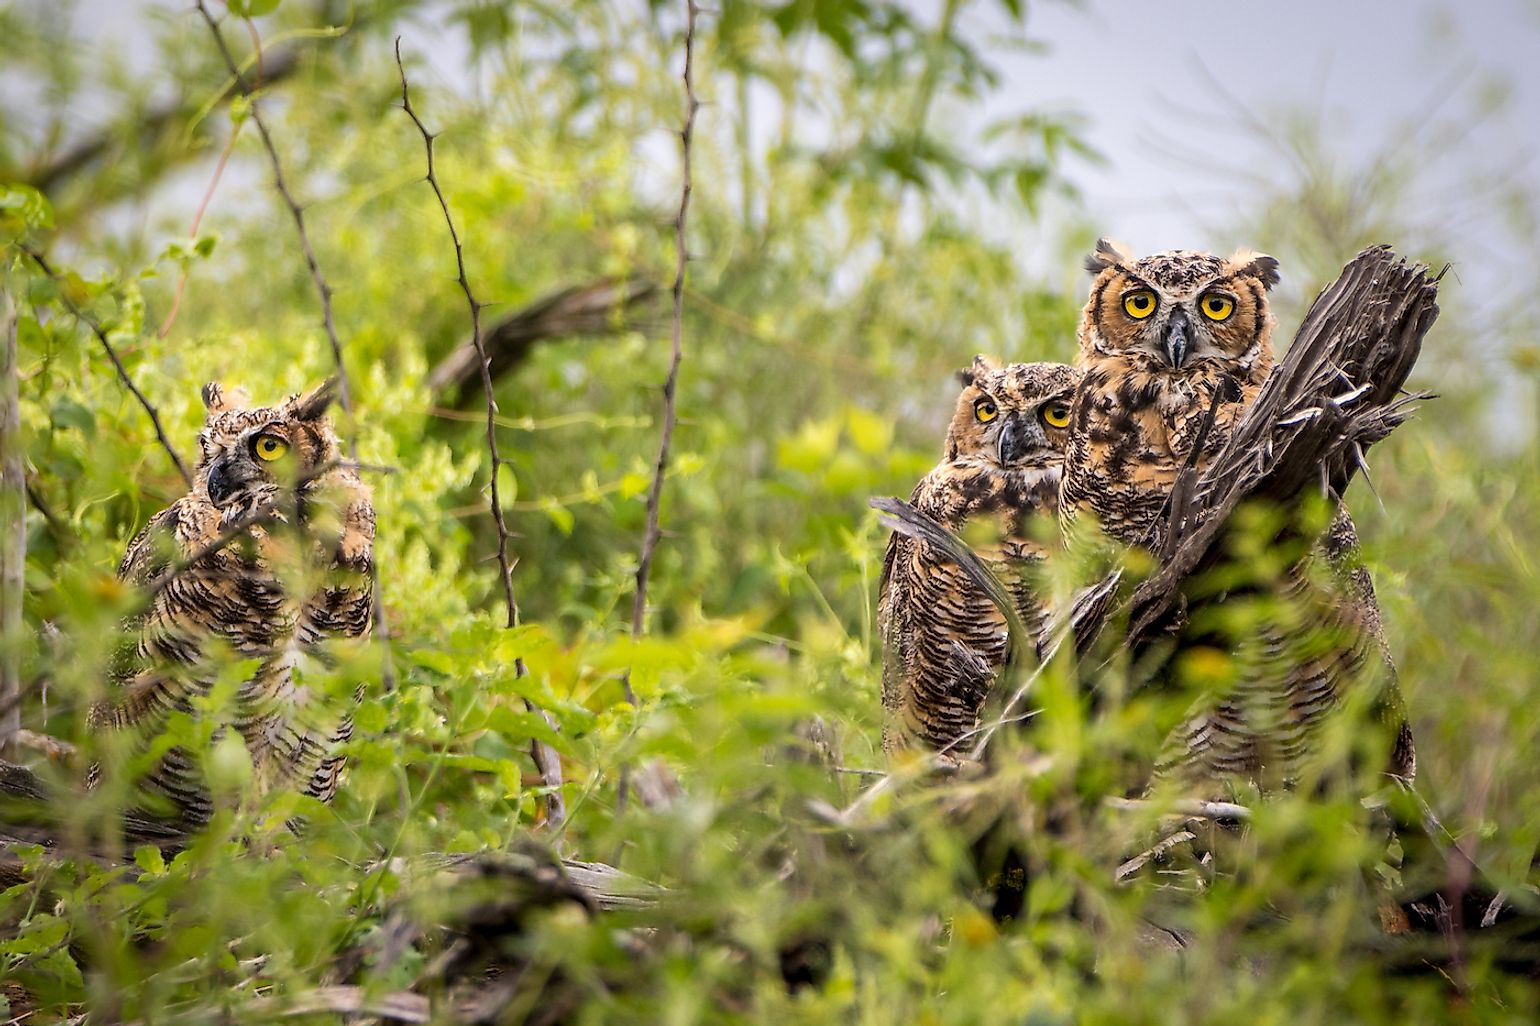 Parliament of Great Horned Owls. Image credit: RogersPhotography/Shutterstock.com